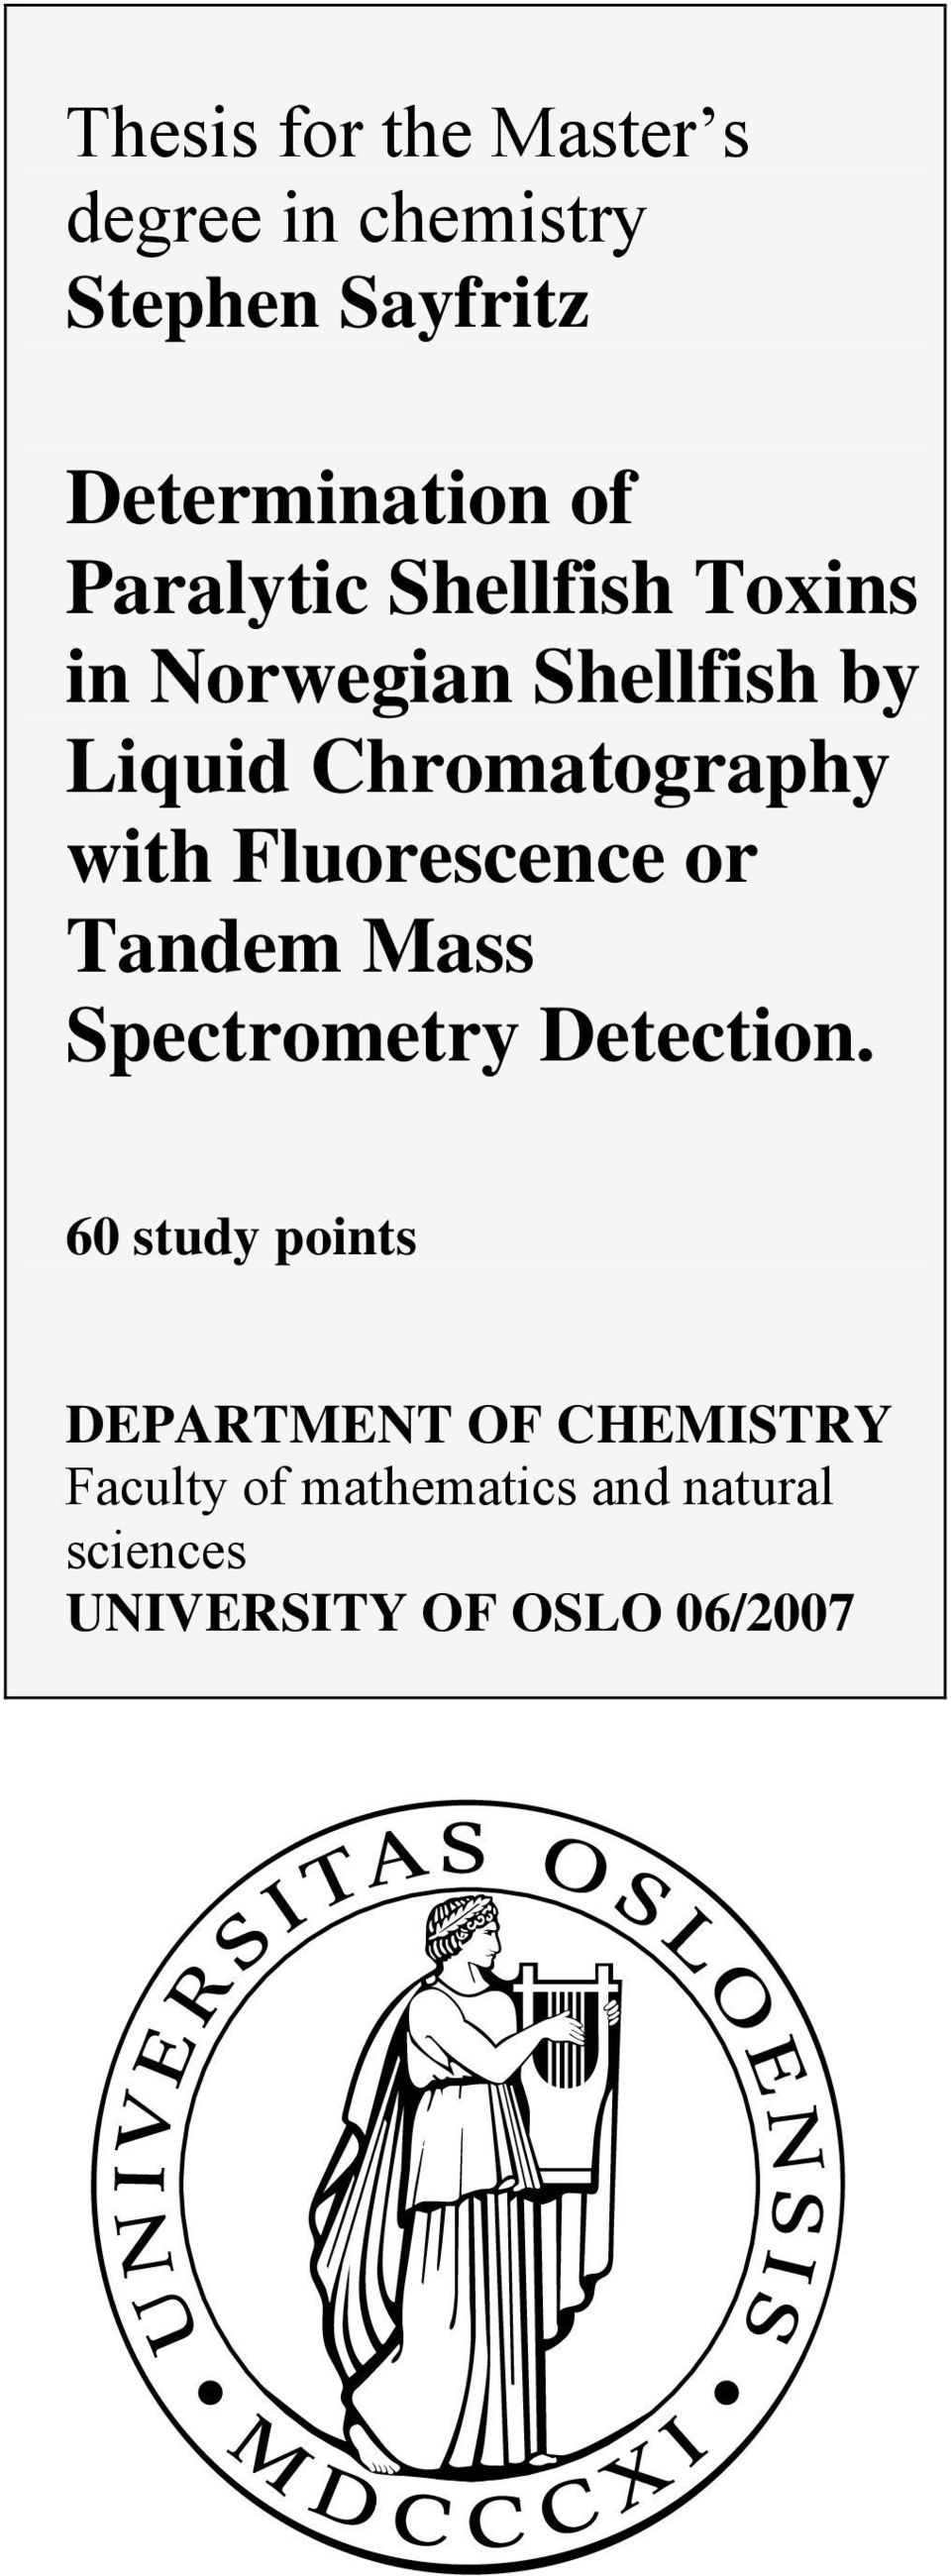 Fluorescence or Tandem Mass Spectrometry Detection.